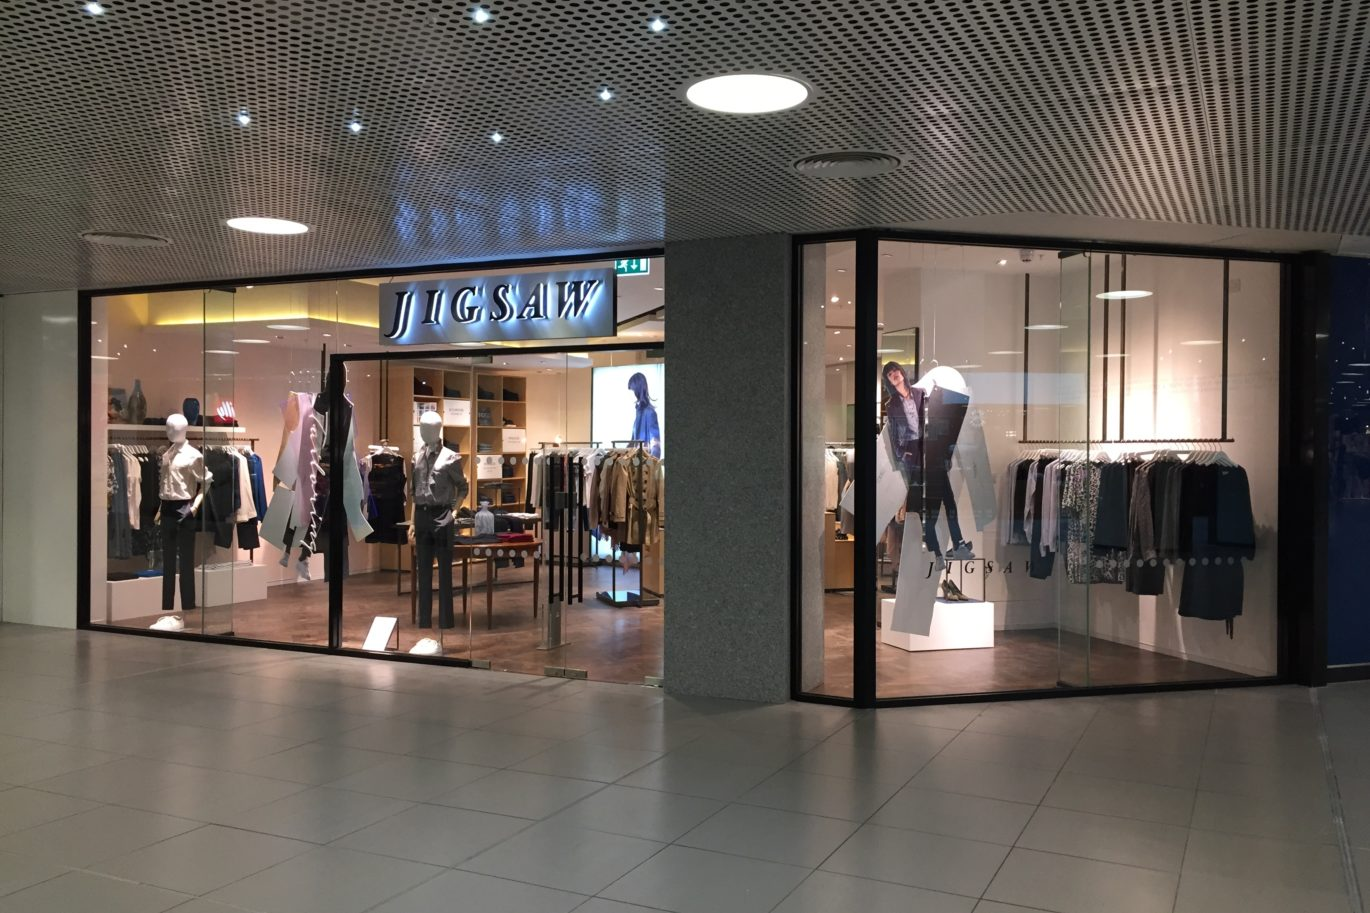 Jigsaw - Fit Out Within Shopping Centre For a Multiple Retailer